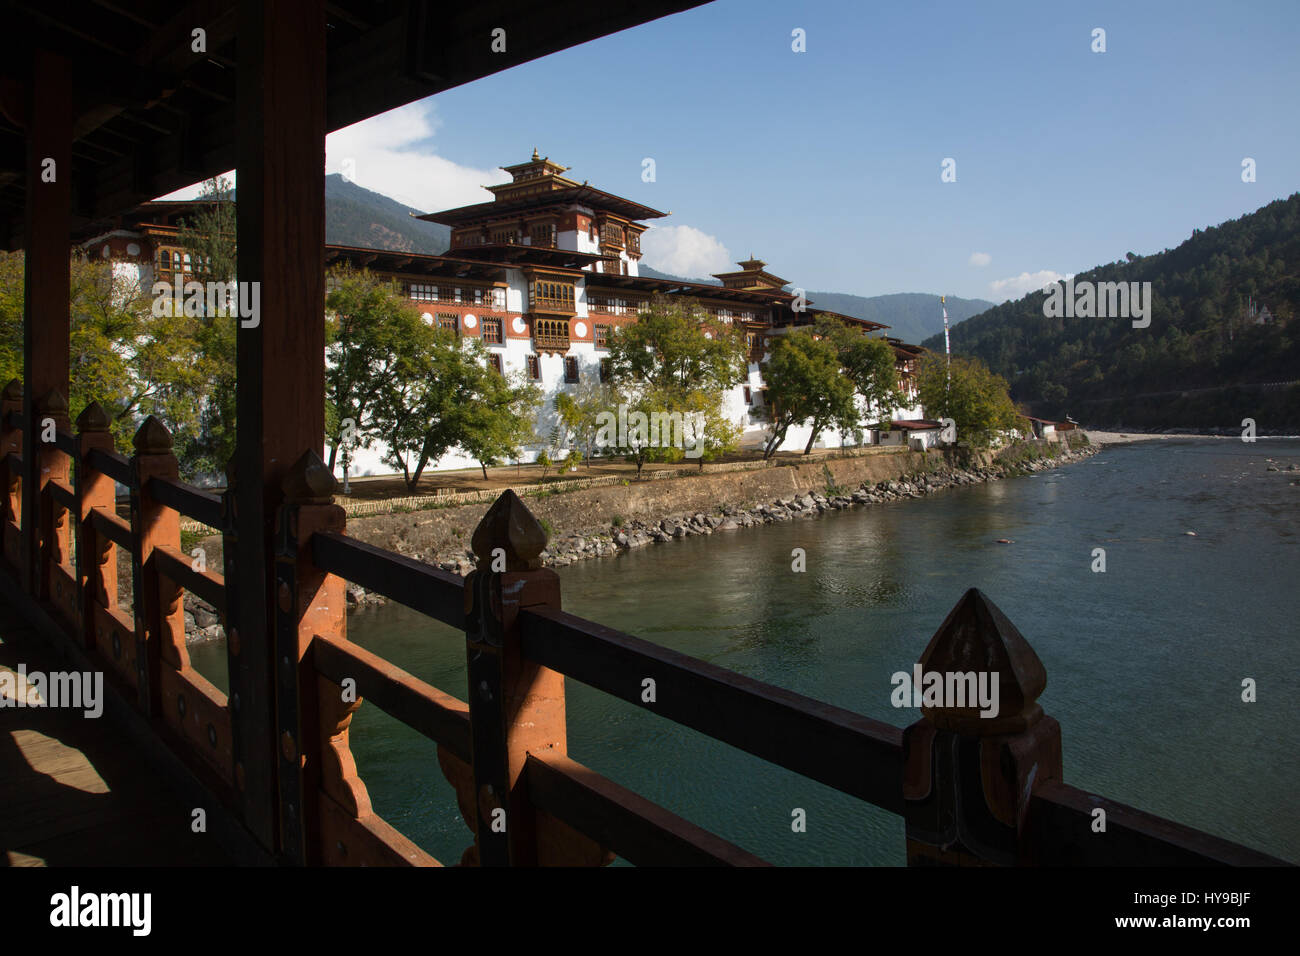 Punakha Dzong and Mo Chhu River from the covered bridge.  Punakha, Bhutan. - Stock Image